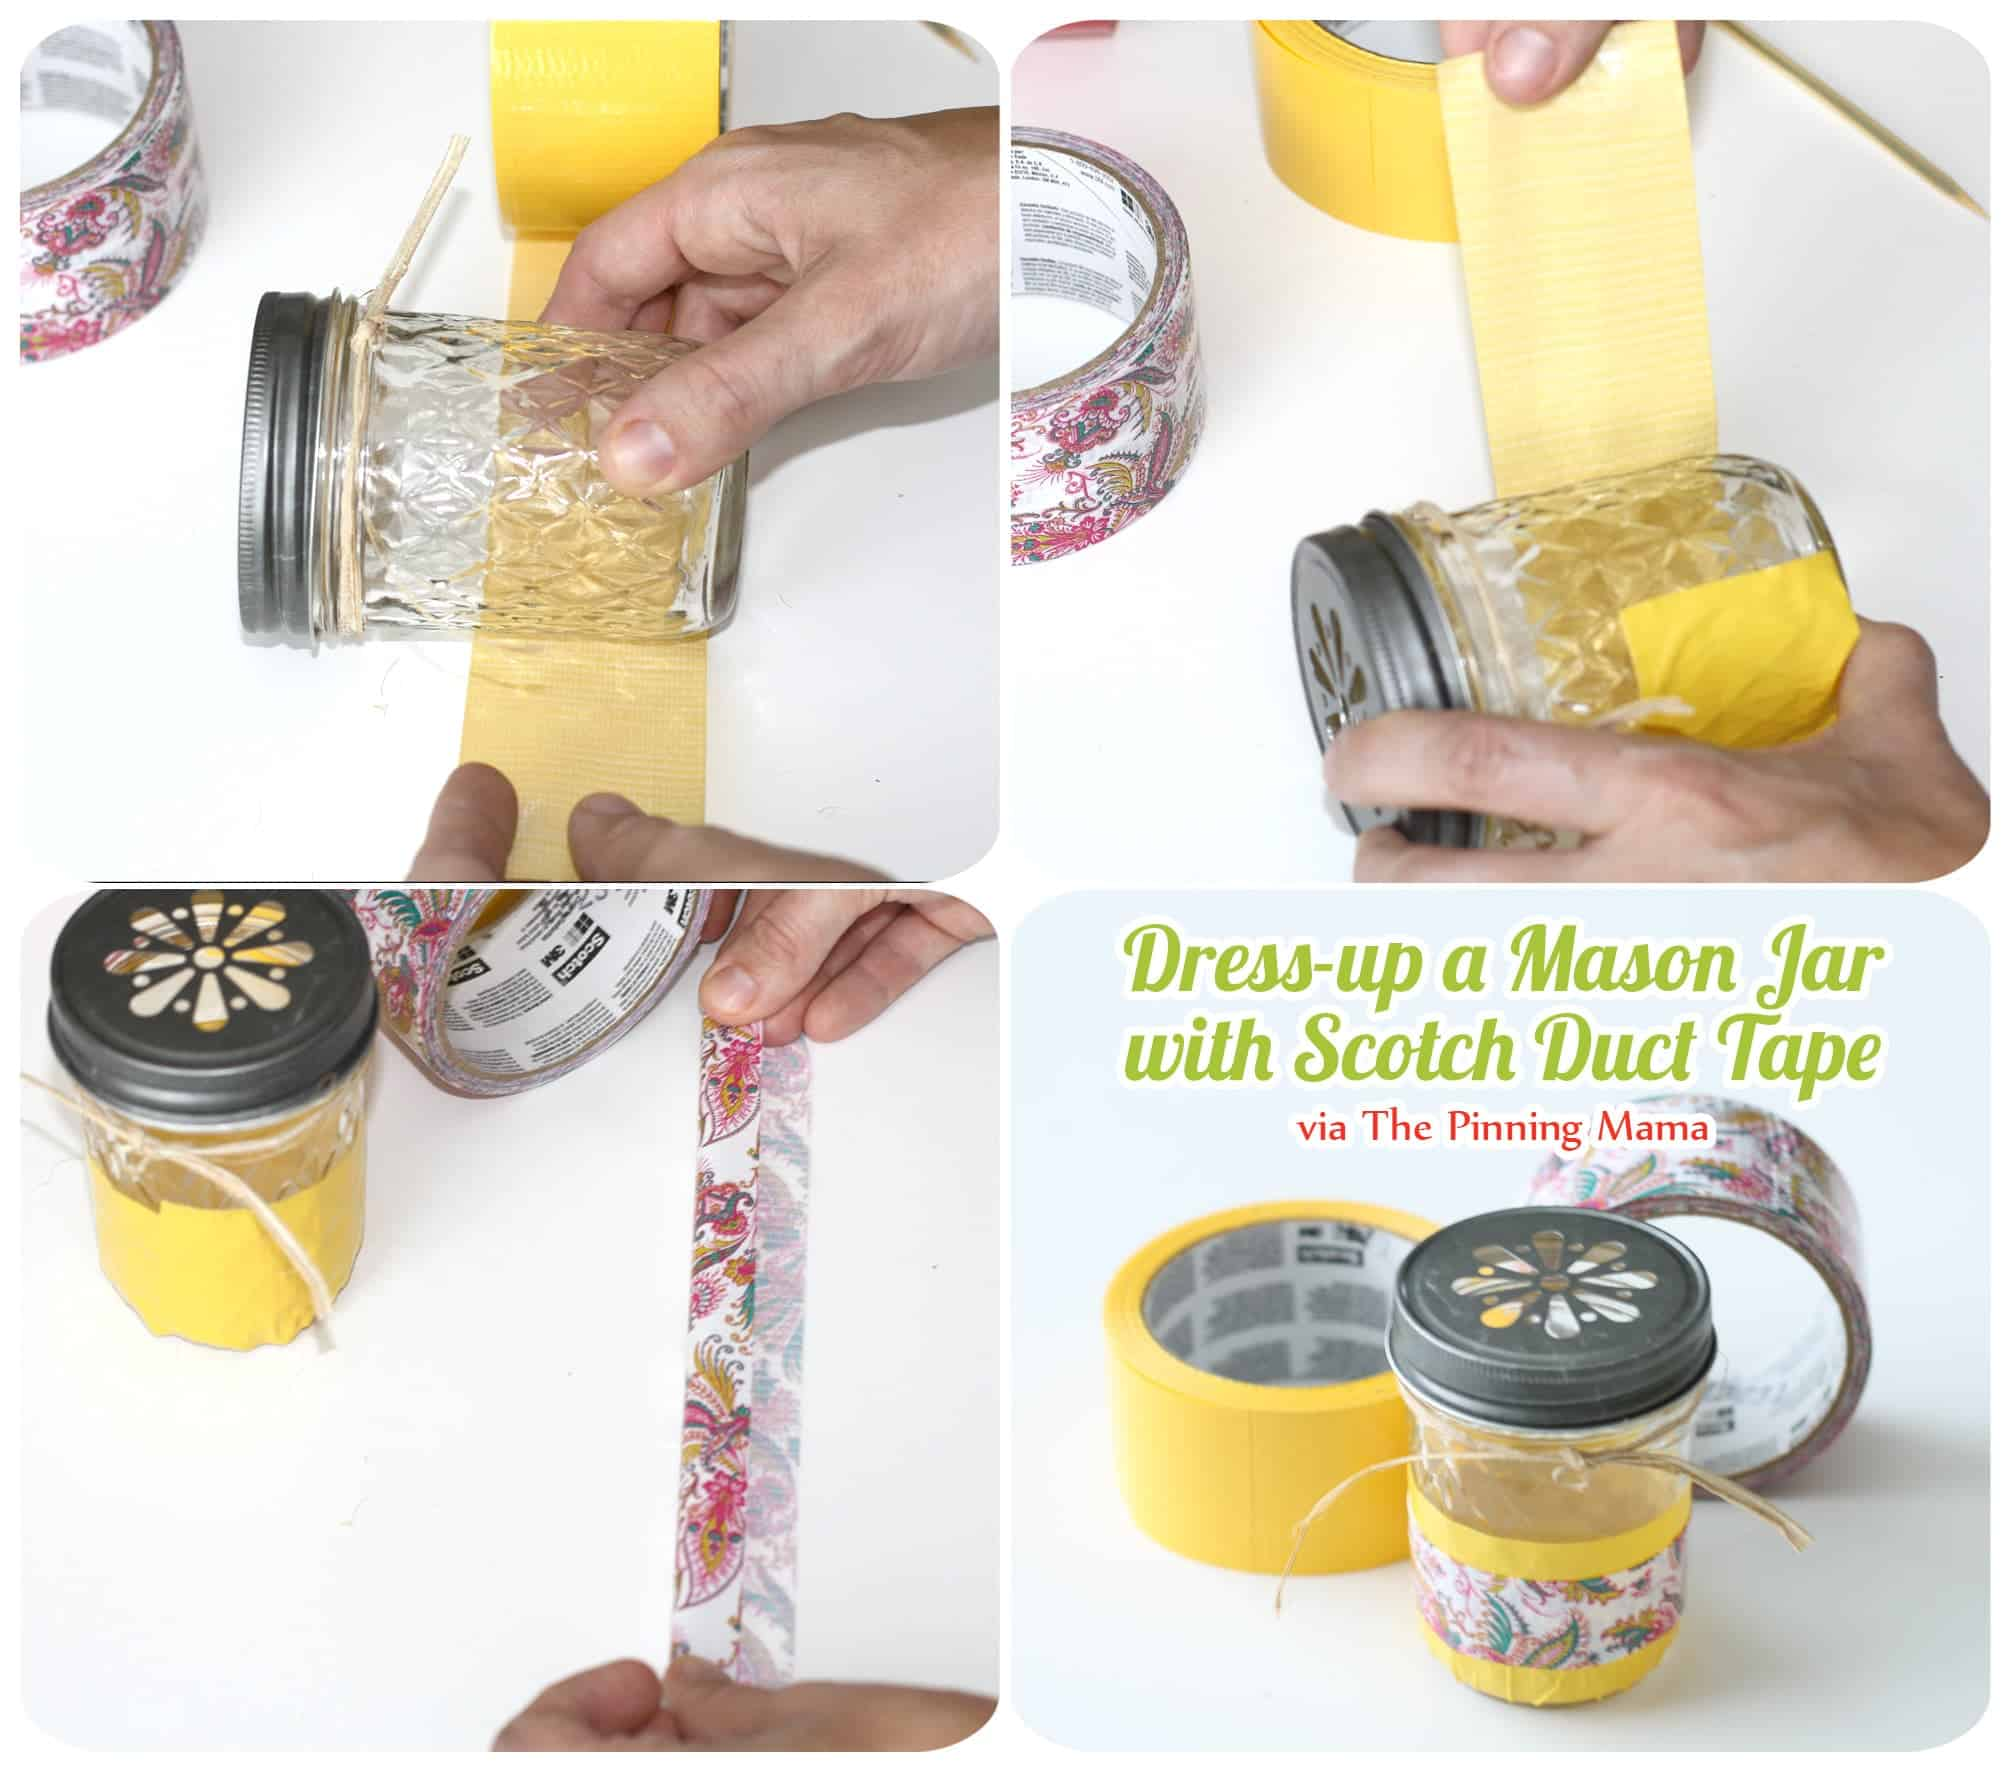 scotch tape diy mason jars www.thepinningmama.com